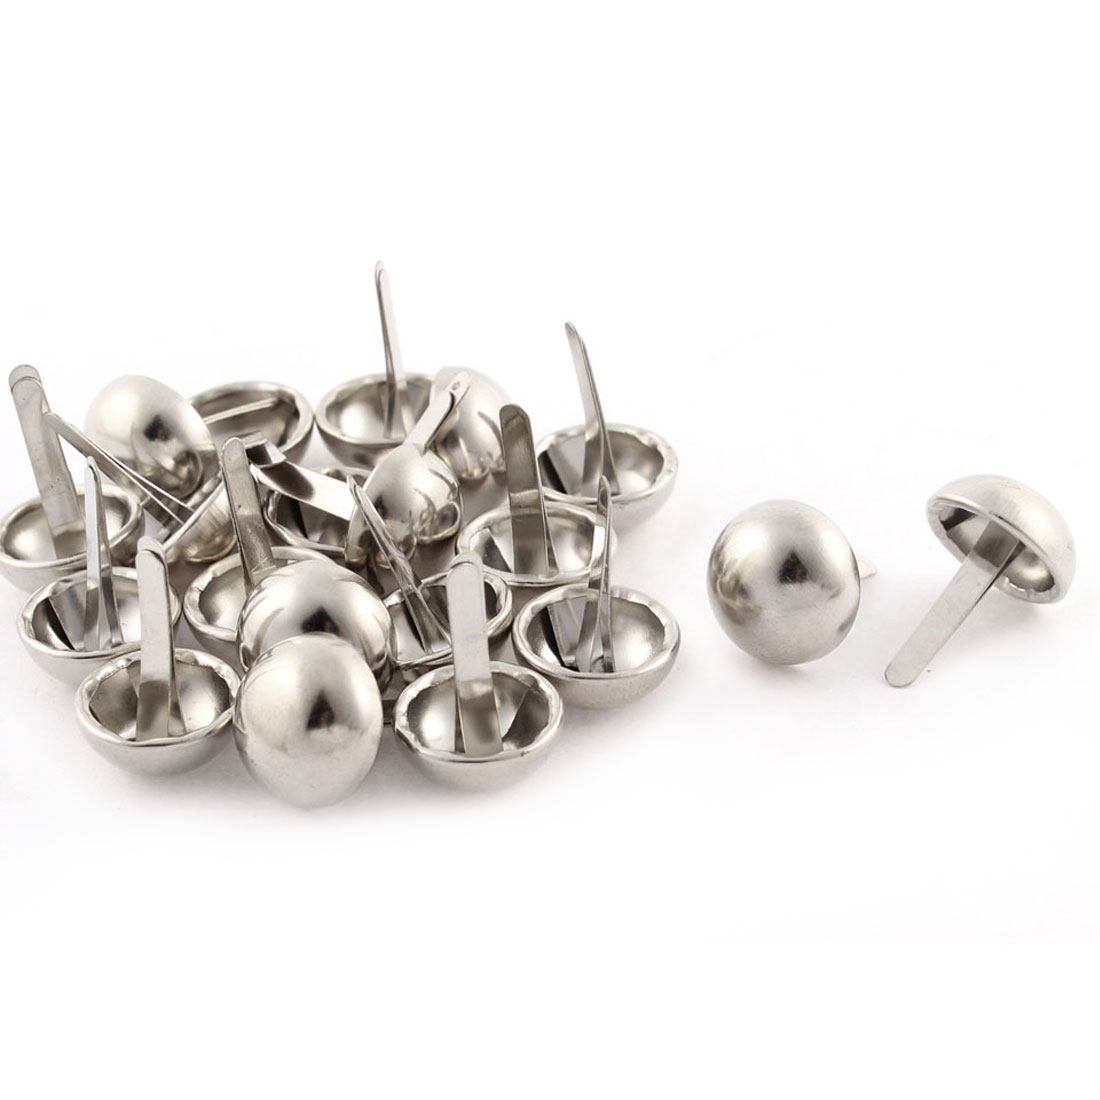 15mm Dia Round Shape Clothes Decorative Metal Split Rivets Silver Tone 20Pcs